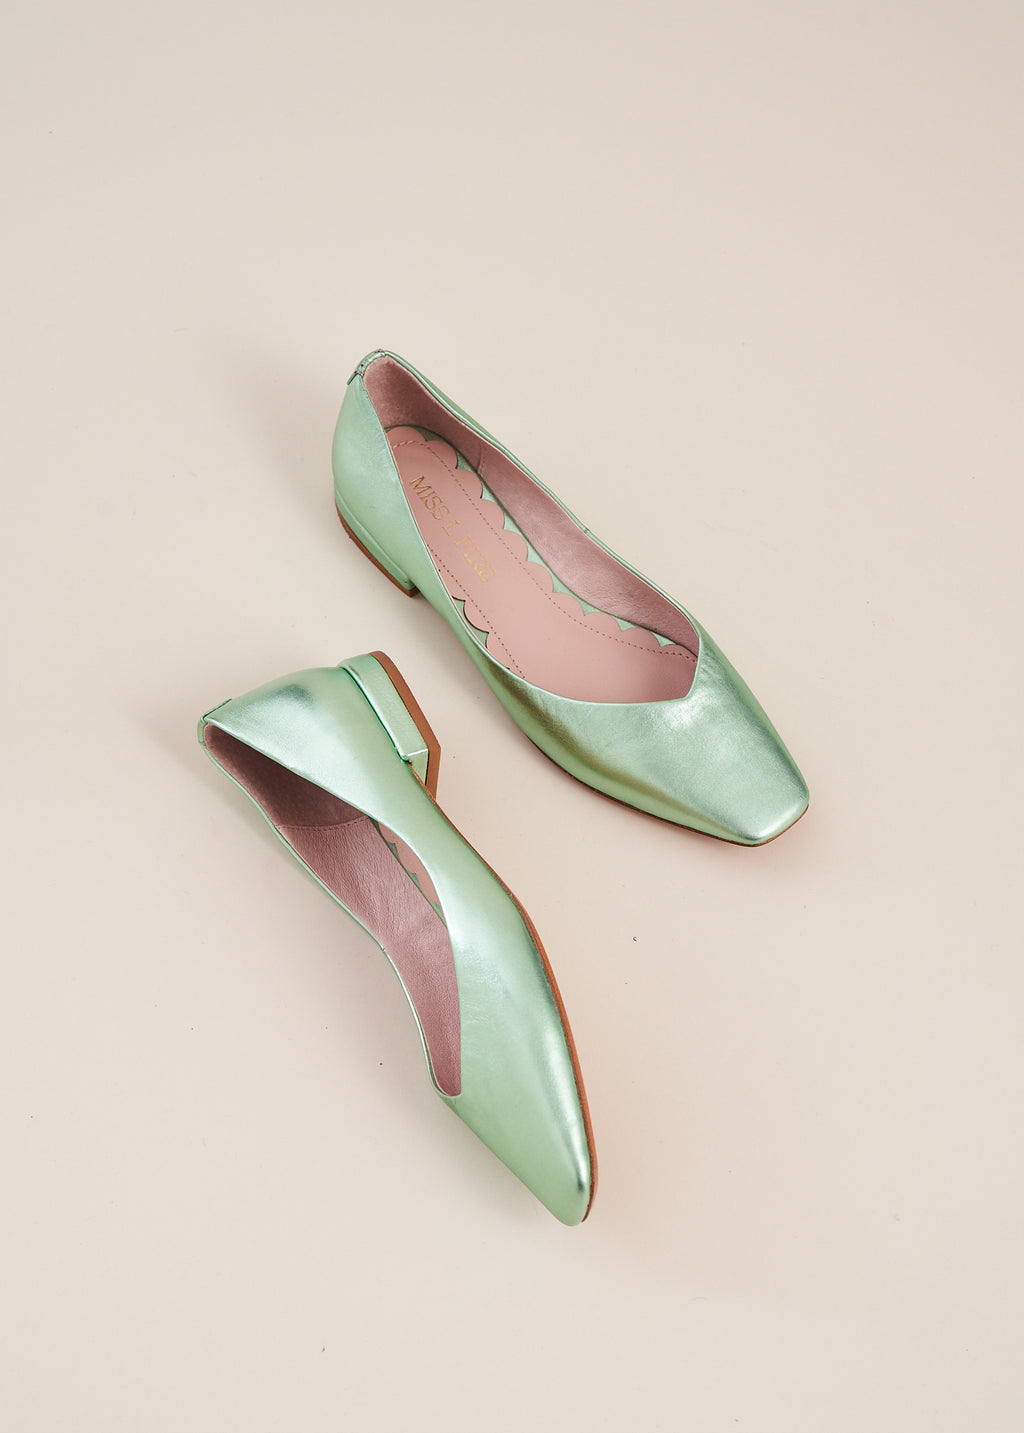 Polly in mint metallic leather by Miss L Fire is the perfect, pared down, elegant  ballet flat that you will want to wear every day. Ethically made.